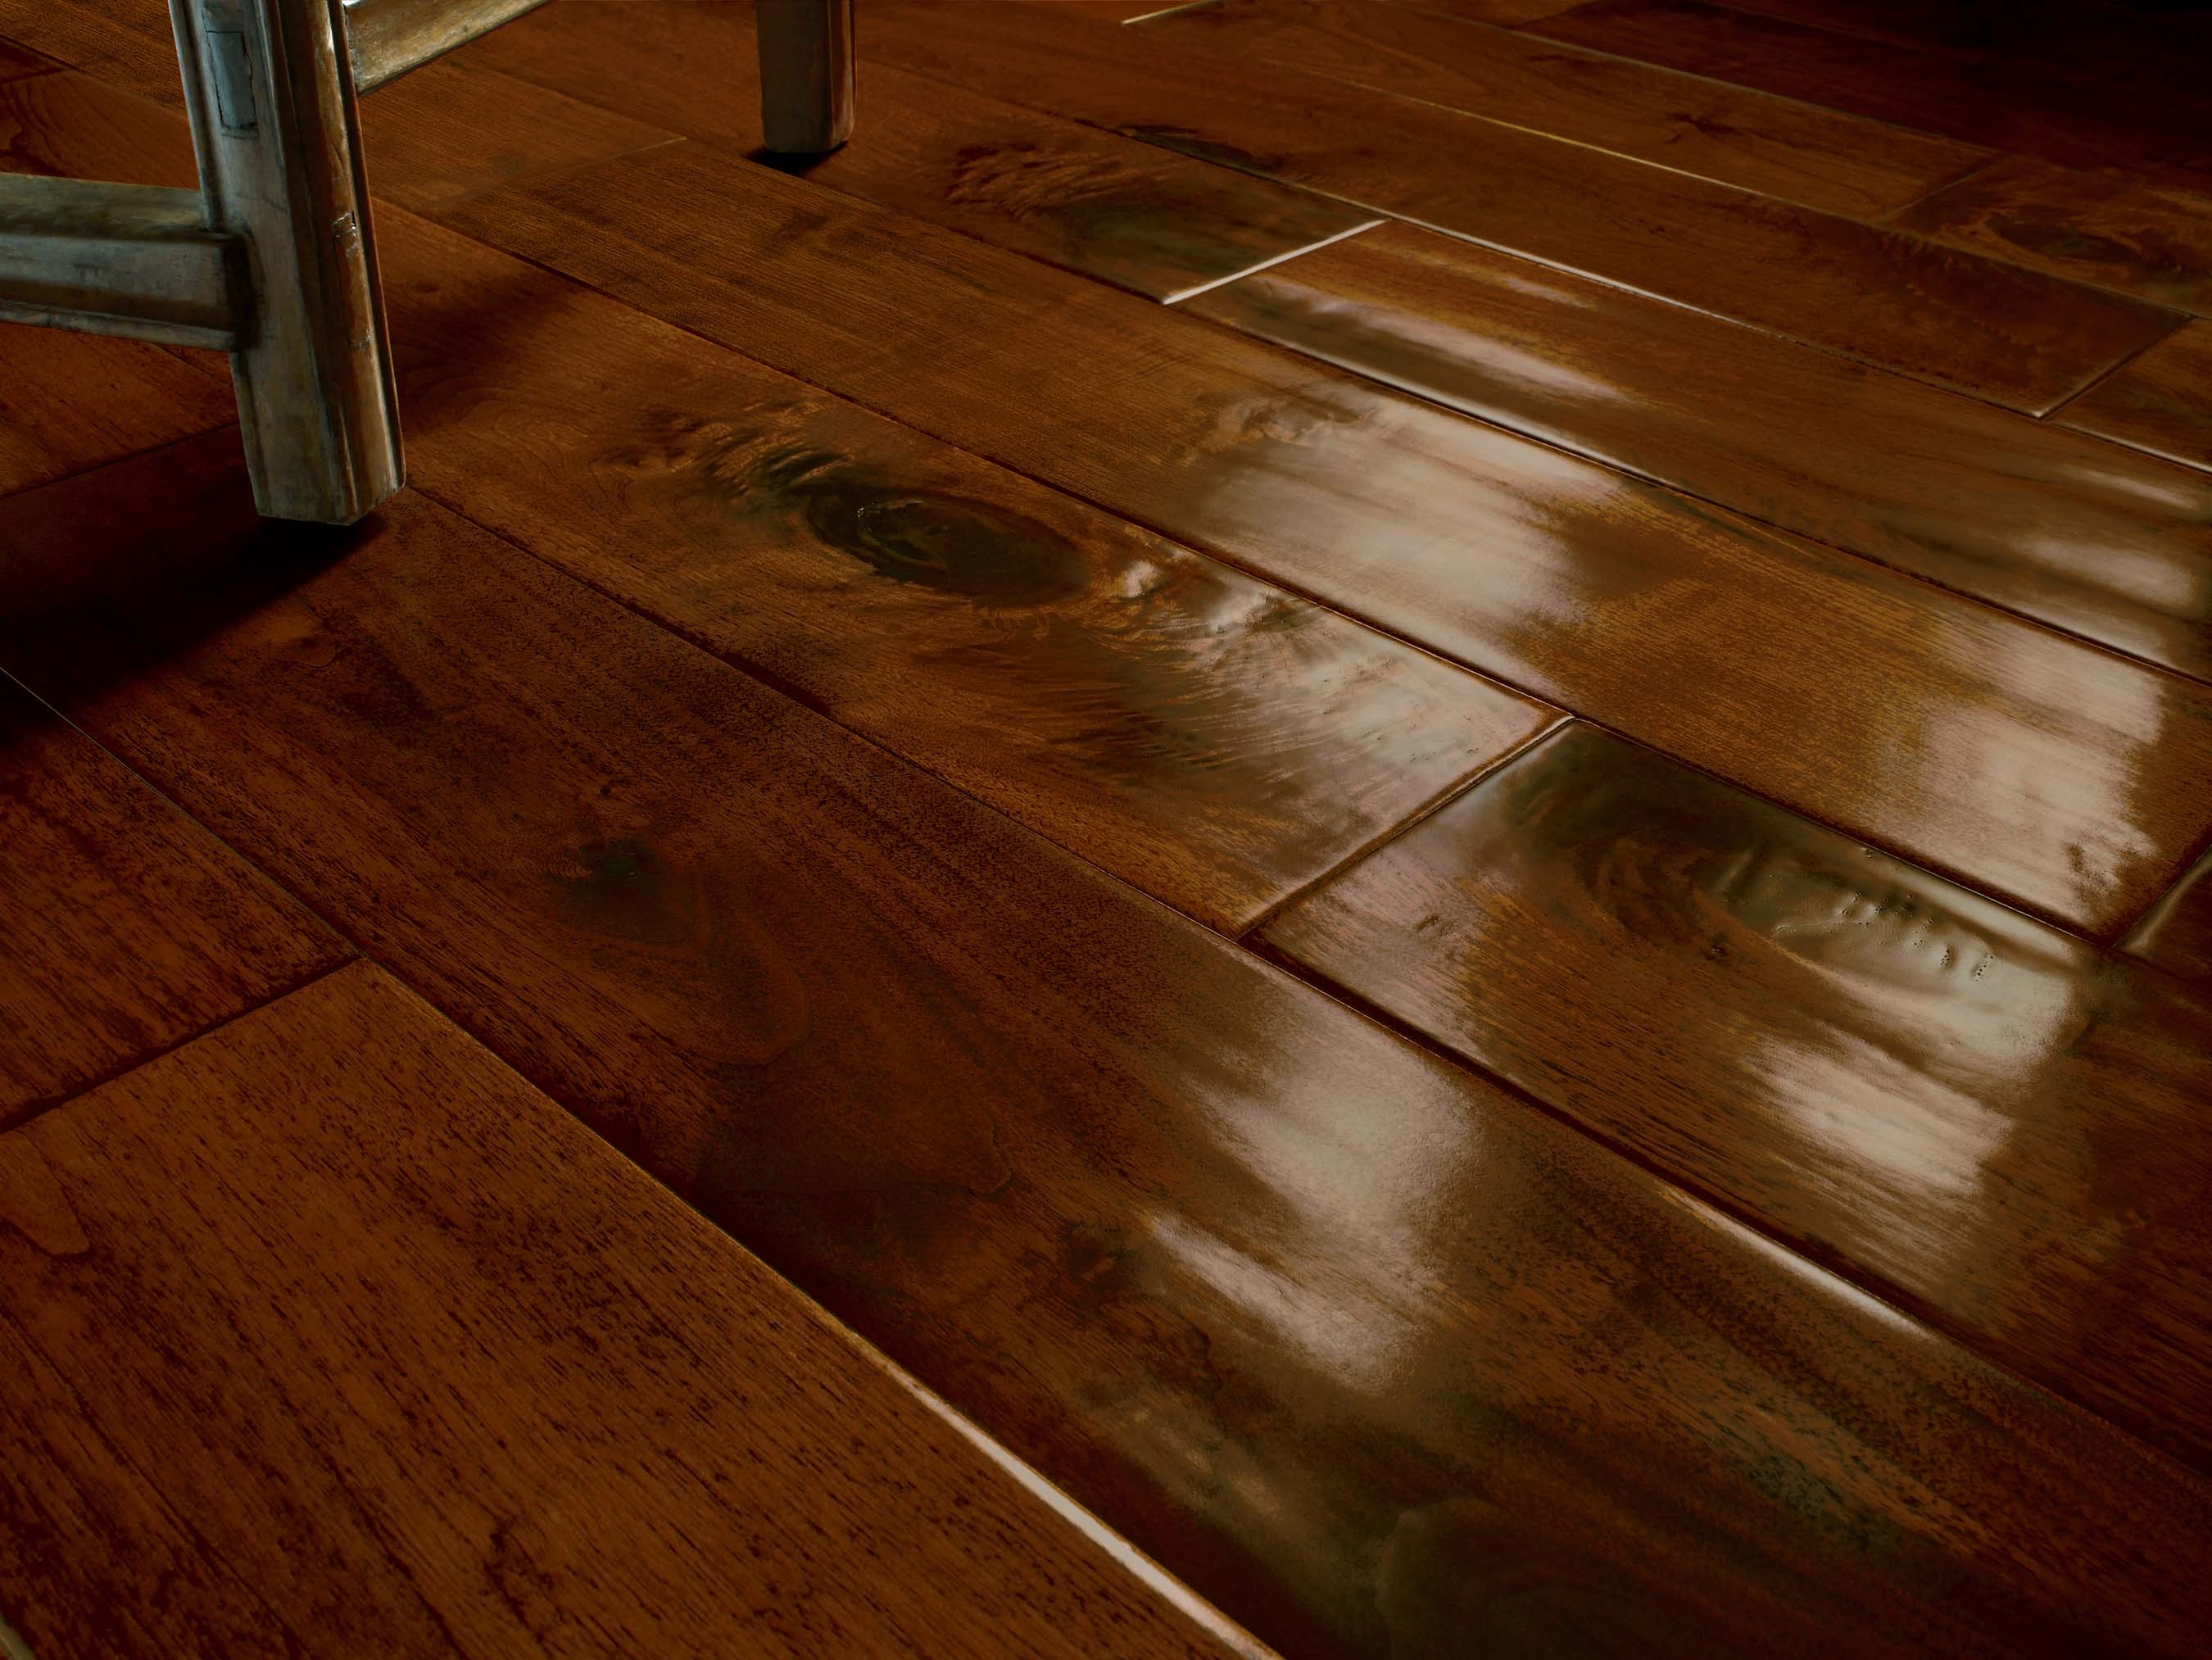 Floor Tiles That Look Like Wood Planks